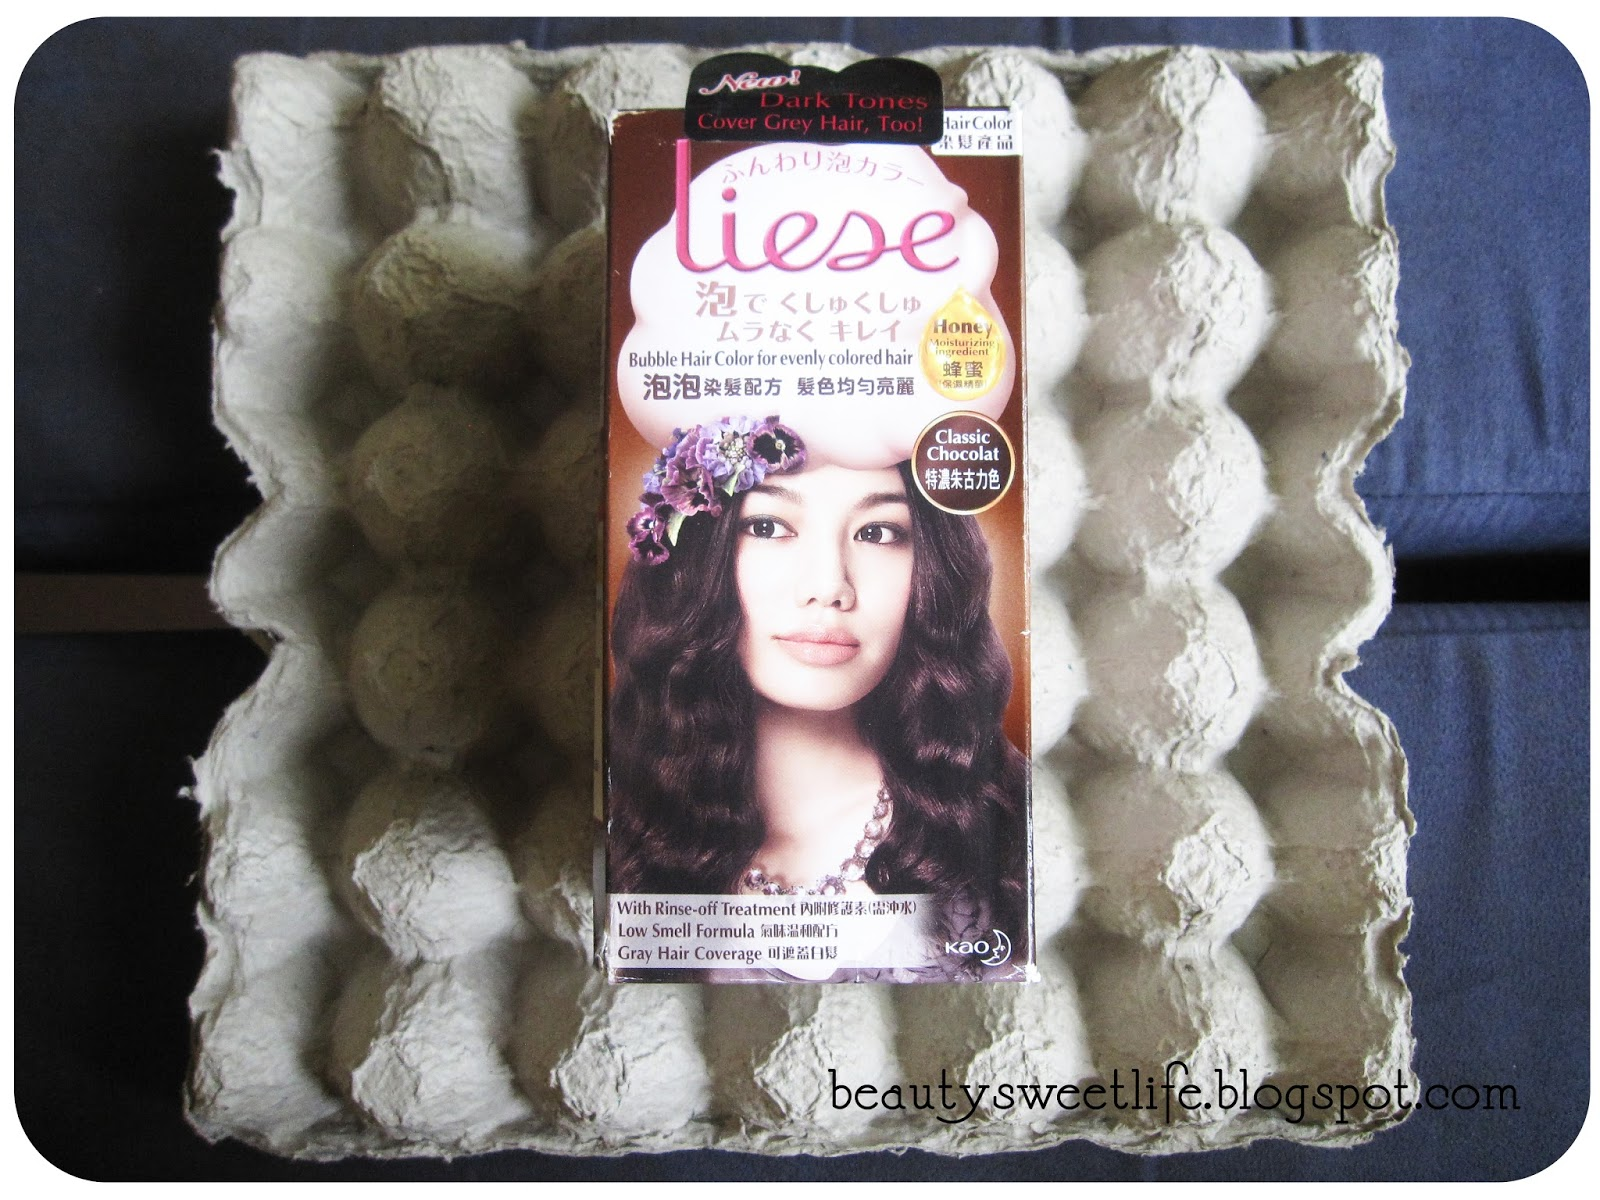 Review 10 Liese Bubble Hair Color Classic Chocolate